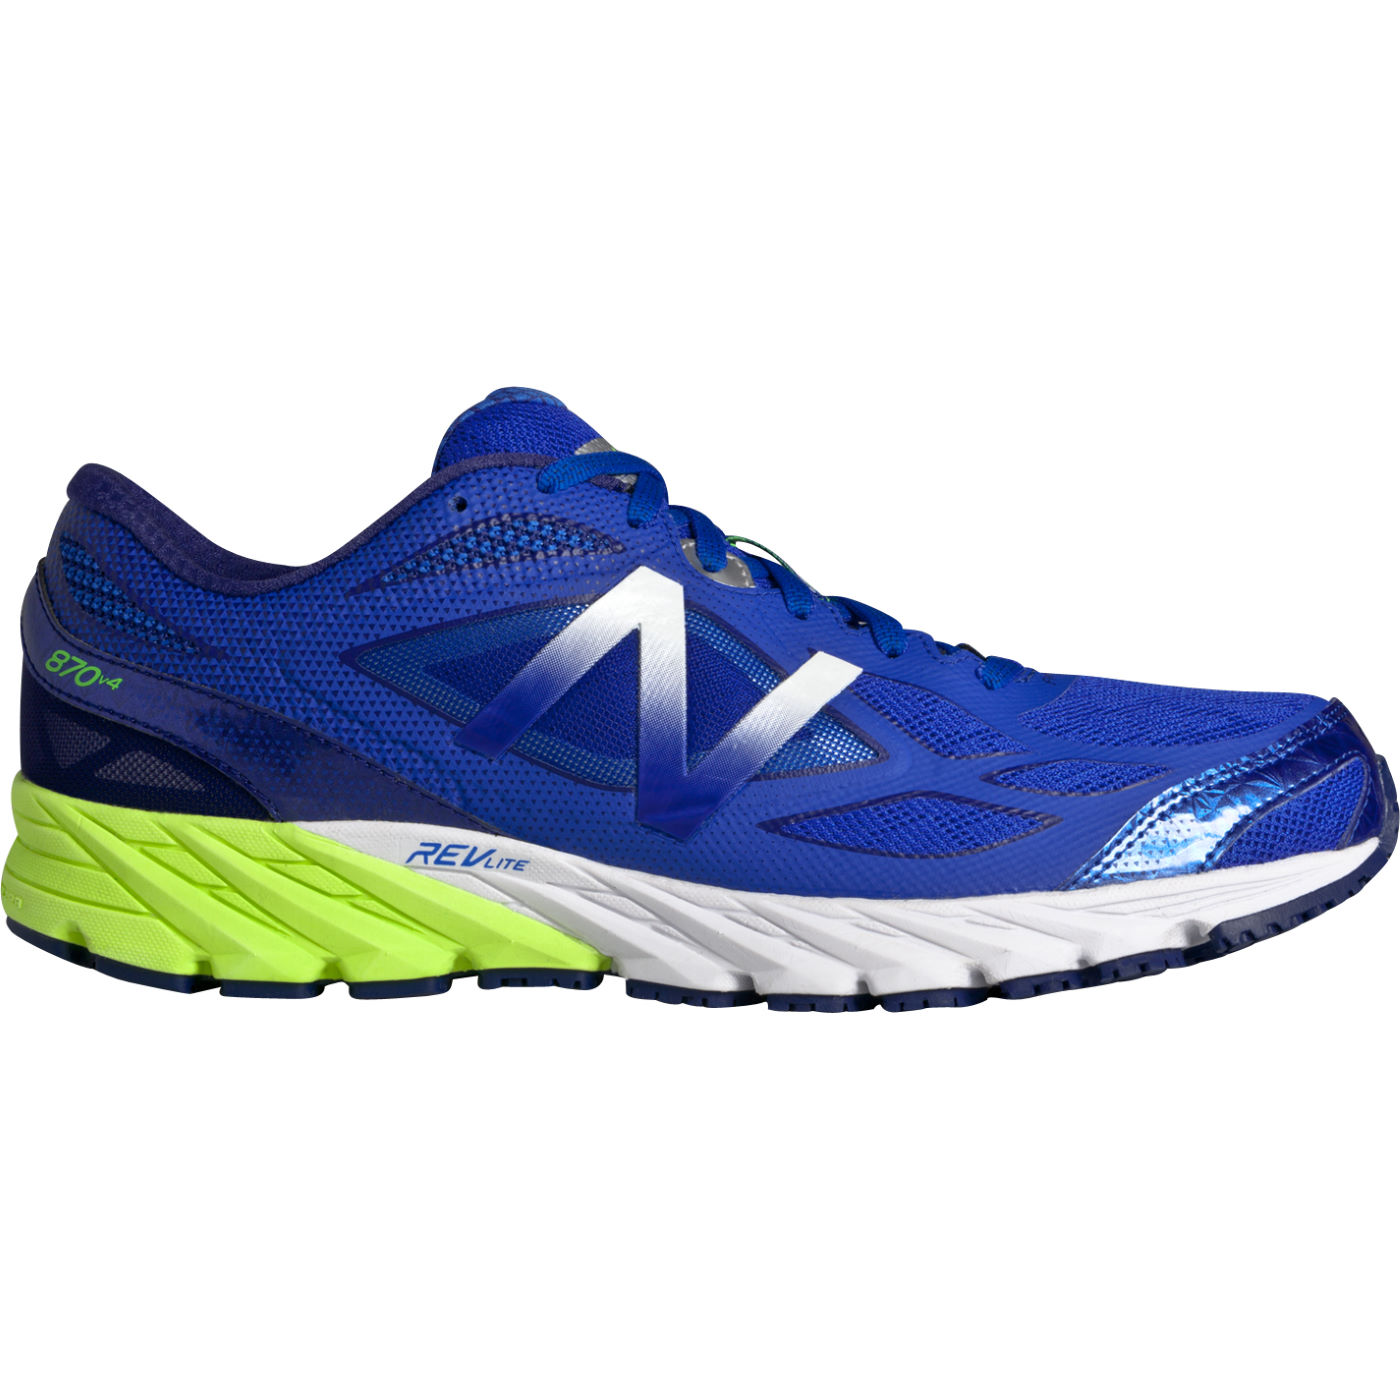 wiggle new balance 870v4 shoes ss16 stability